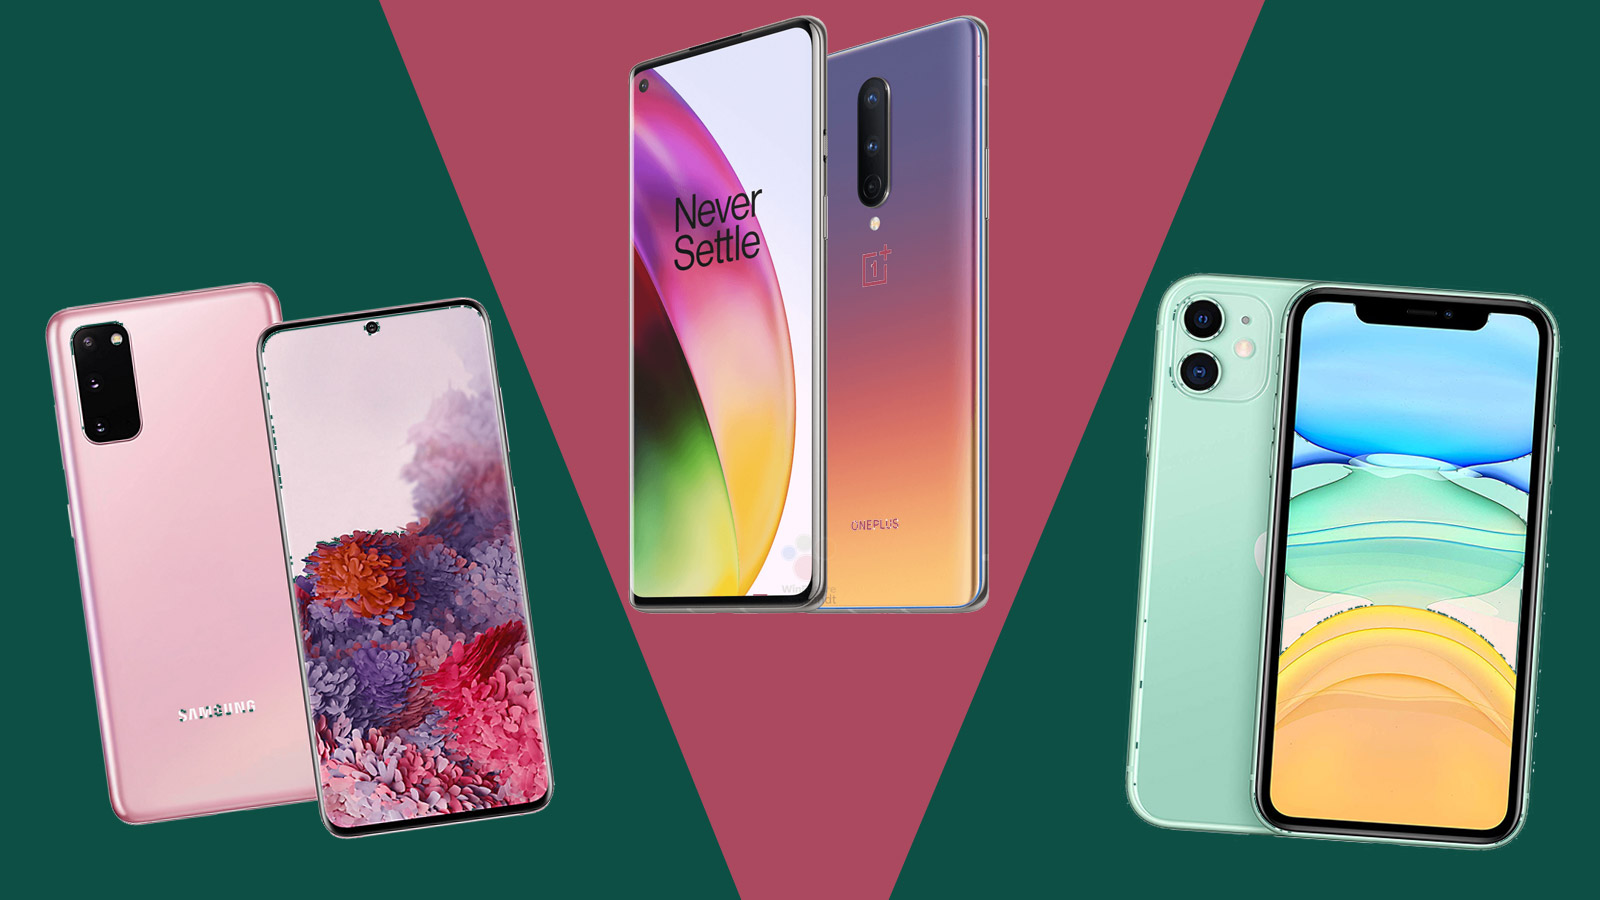 Oneplus 8 Vs Samsung Galaxy S20 Vs Iphone 11 We Evaluate The New Oneplus Phone Techradar